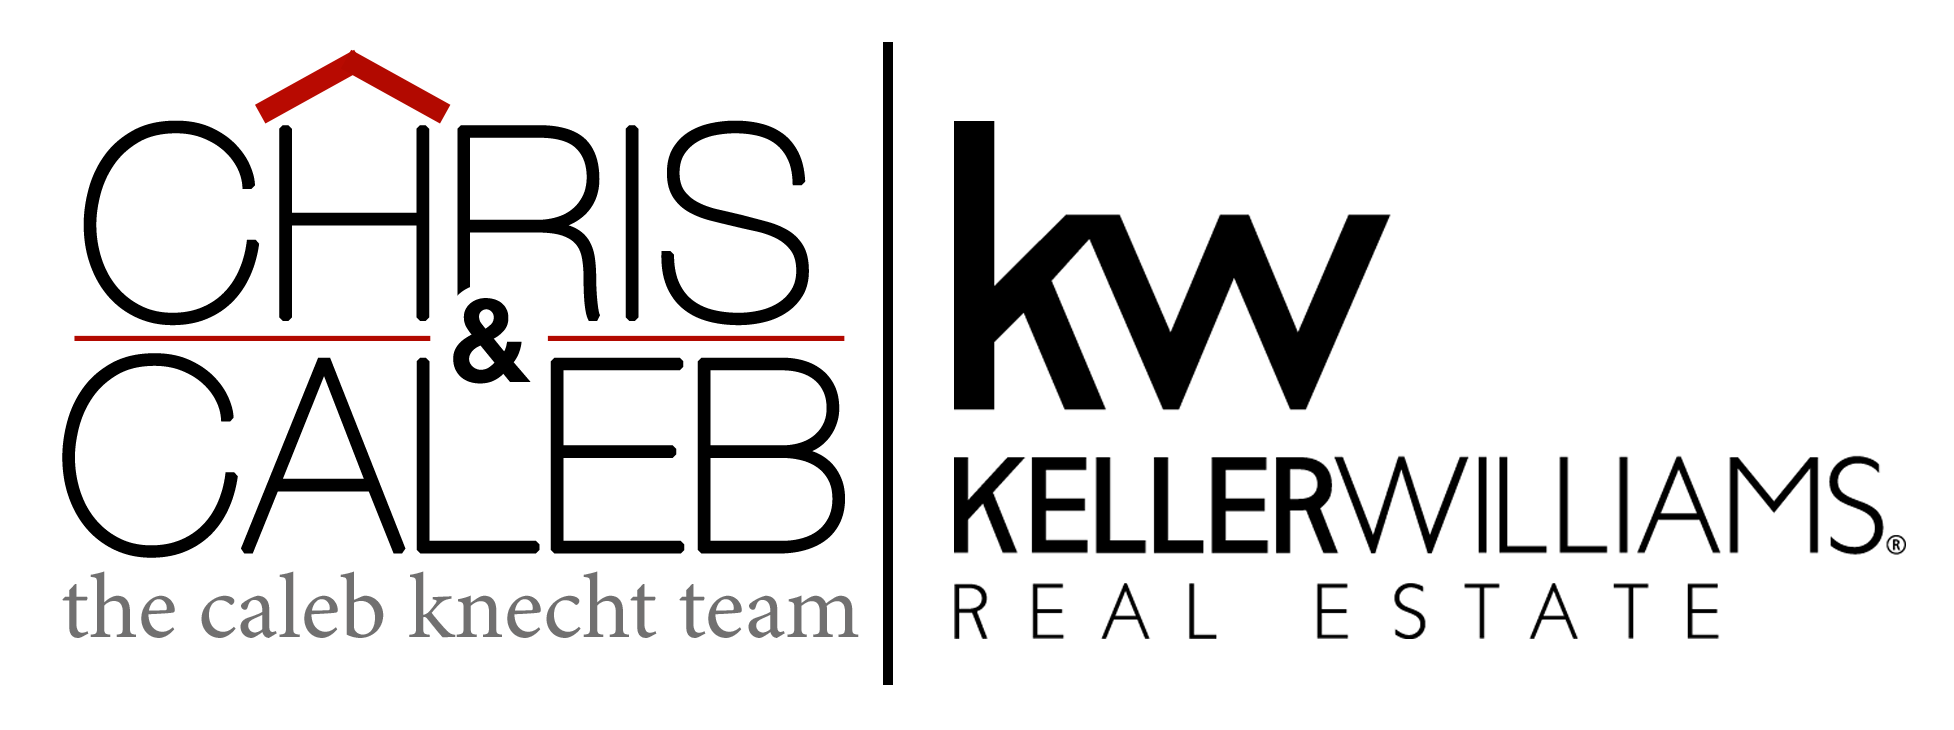 Chris & Caleb Real Estate - Keller Williams logo